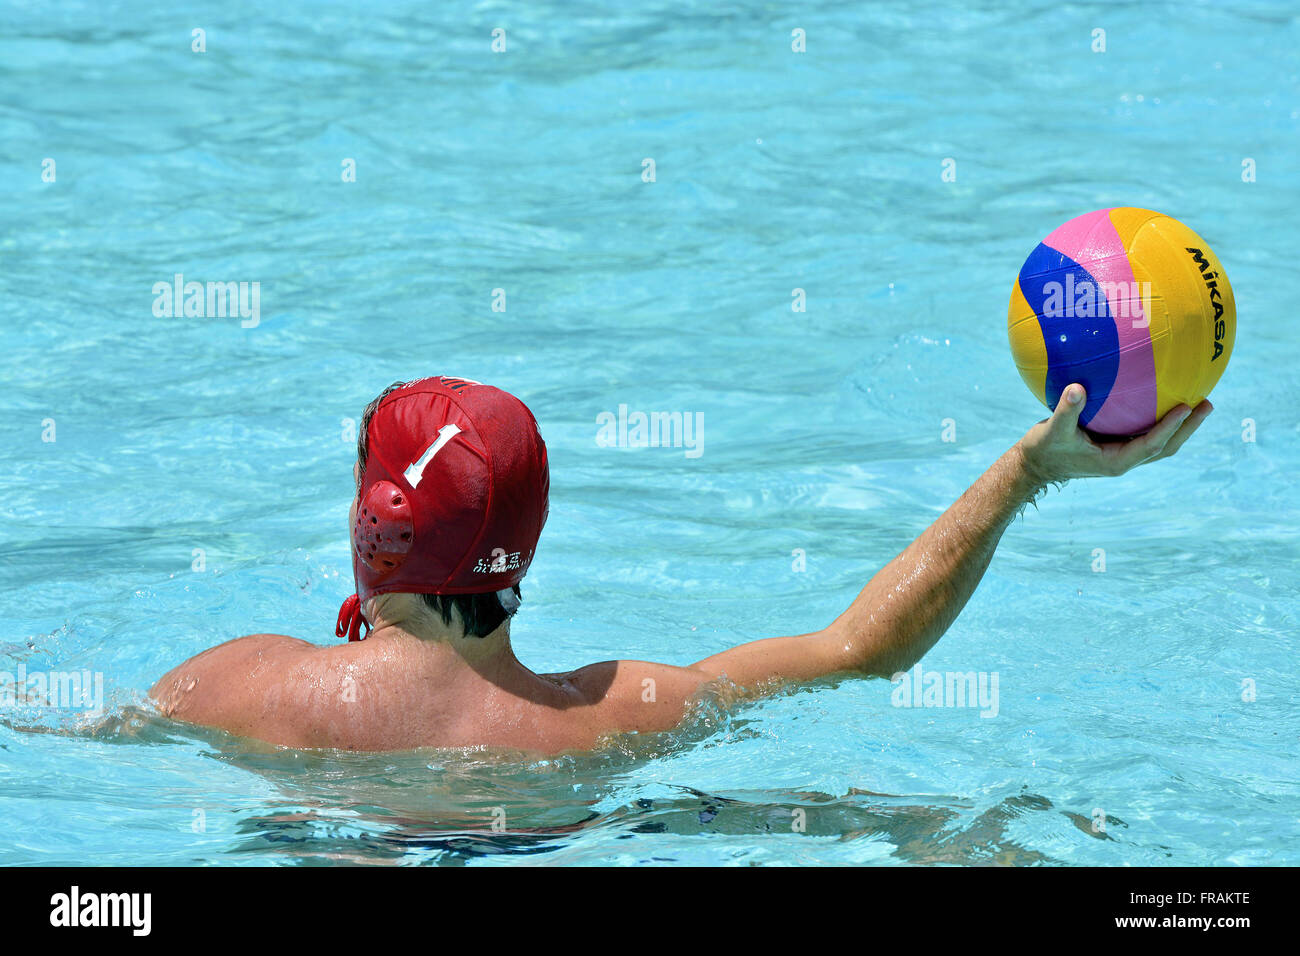 Player Water Polo - Stock Image